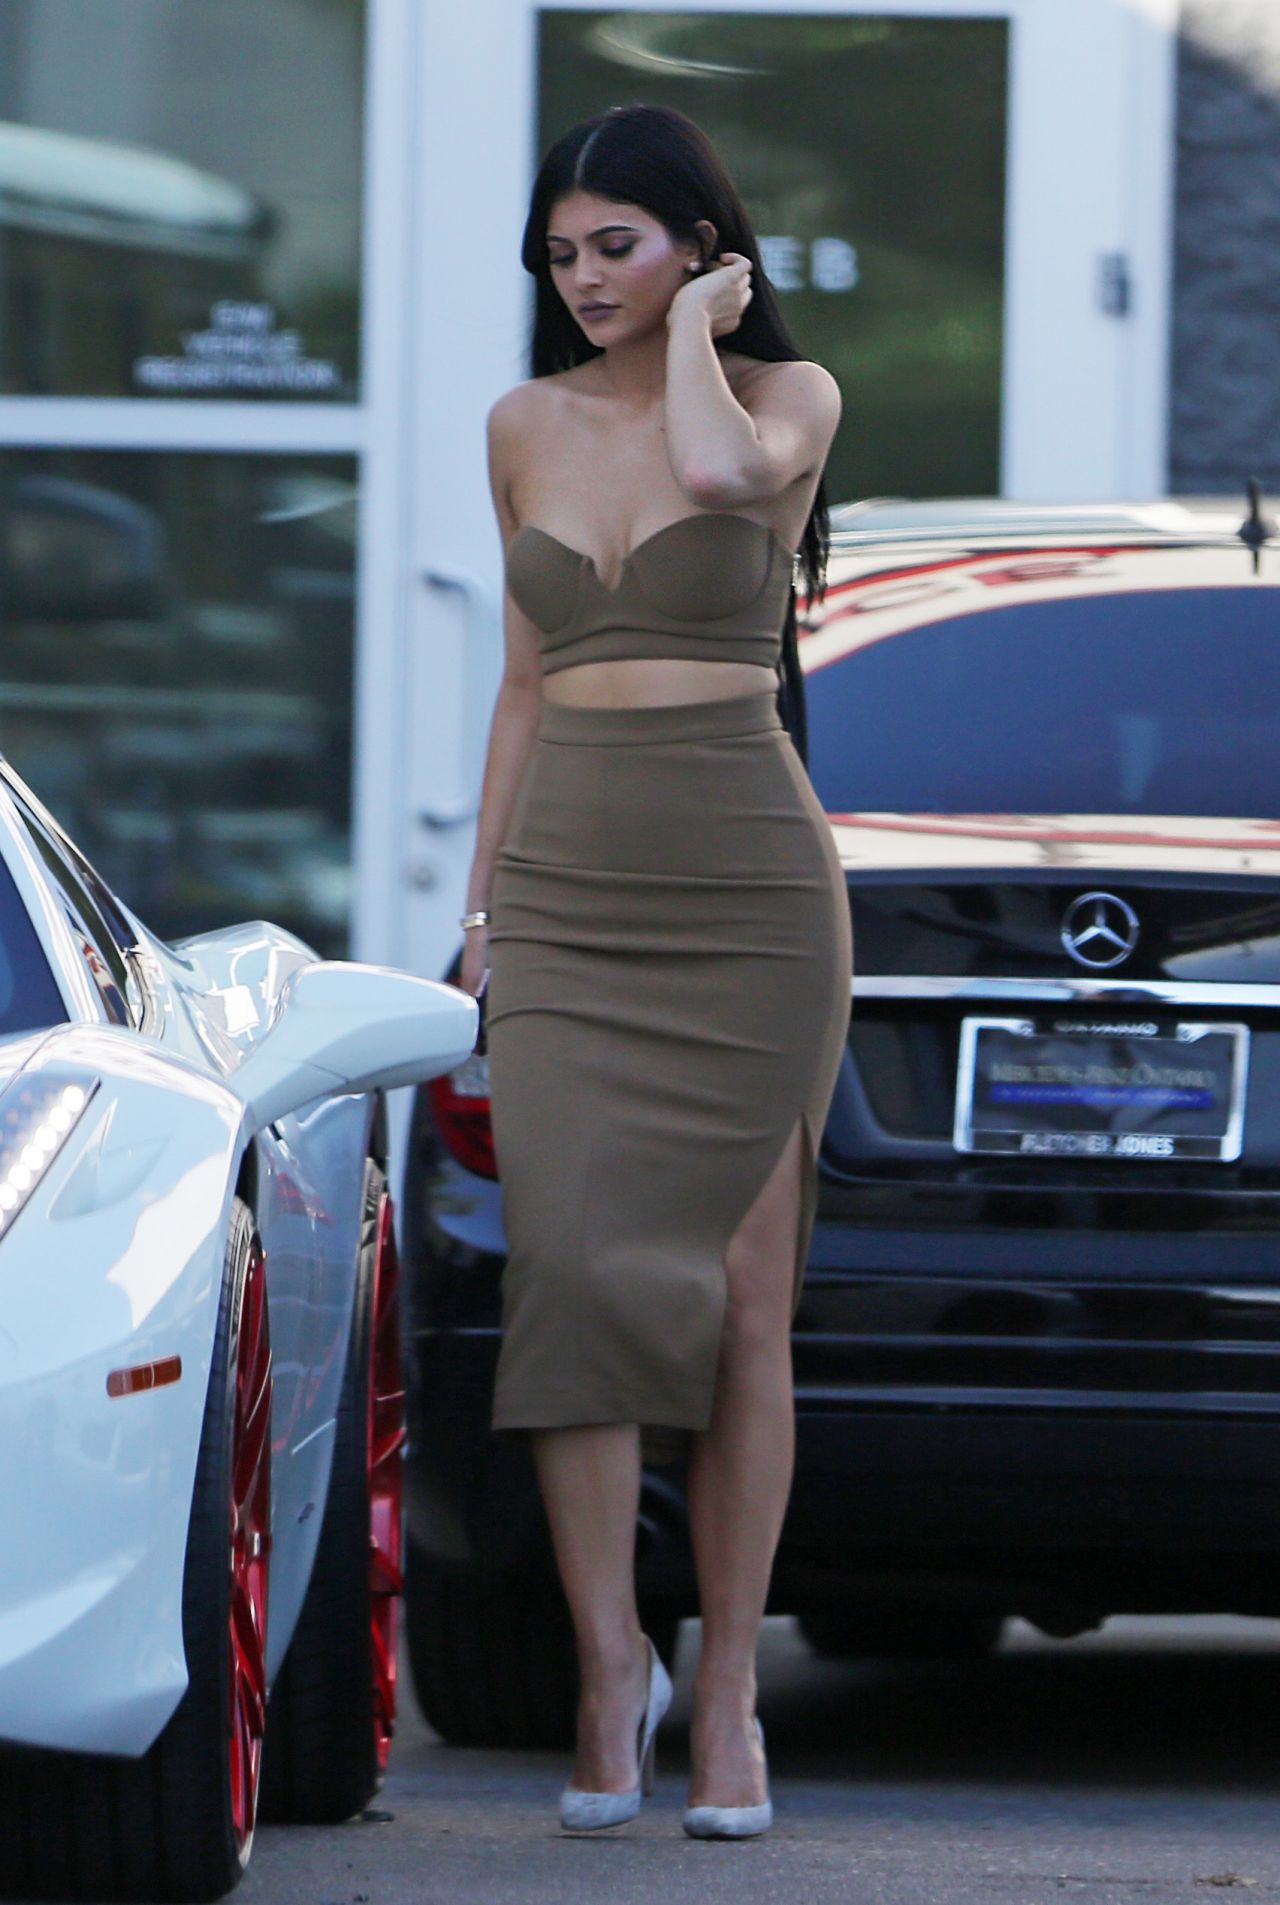 http://celebmafia.com/wp-content/uploads/2015/10/kylie-jenner-style-out-in-woodland-hills-october-2015_11.jpg